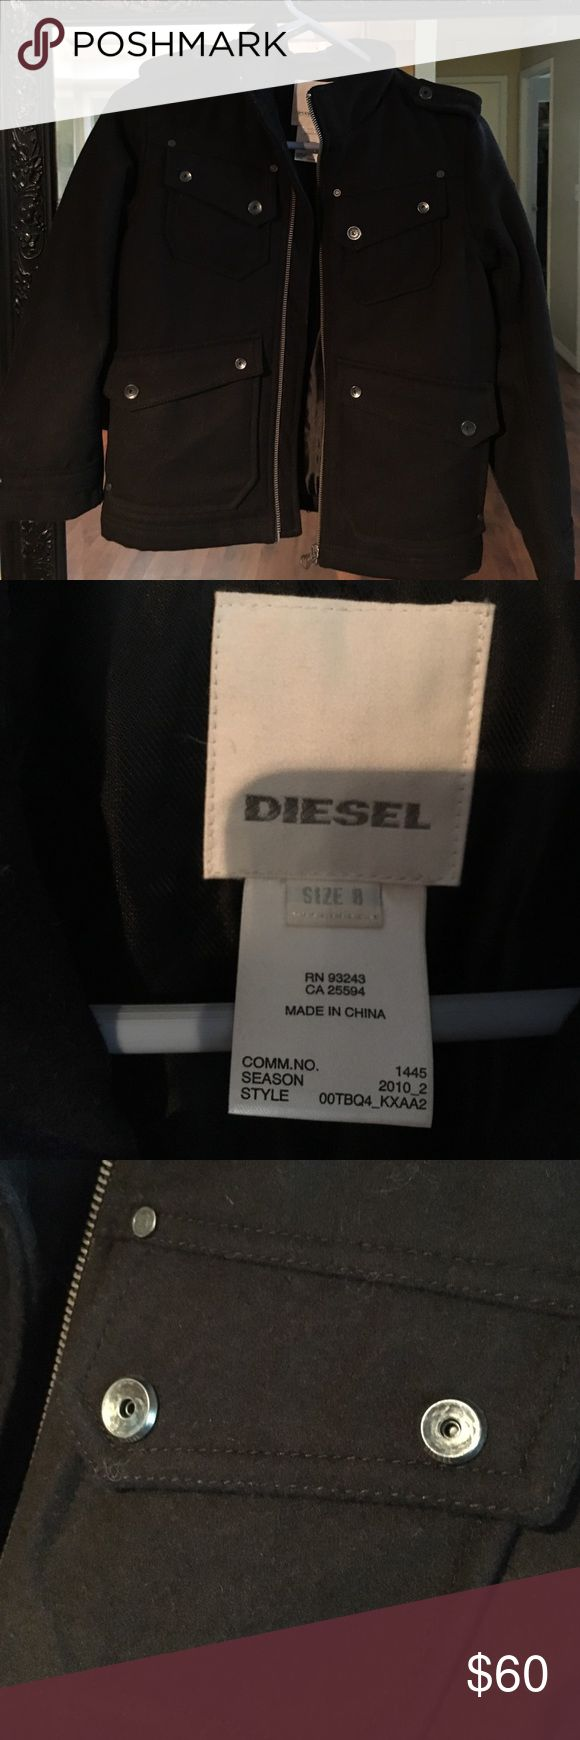 Boys Diesel Coat/jacket Size 8 Never worn Boys size 8 Diesel Coat. 60% wool, 30% polyester. Bought off their website but my son never wanted to wear it. So cute on! Diesel Jackets & Coats Pea Coats